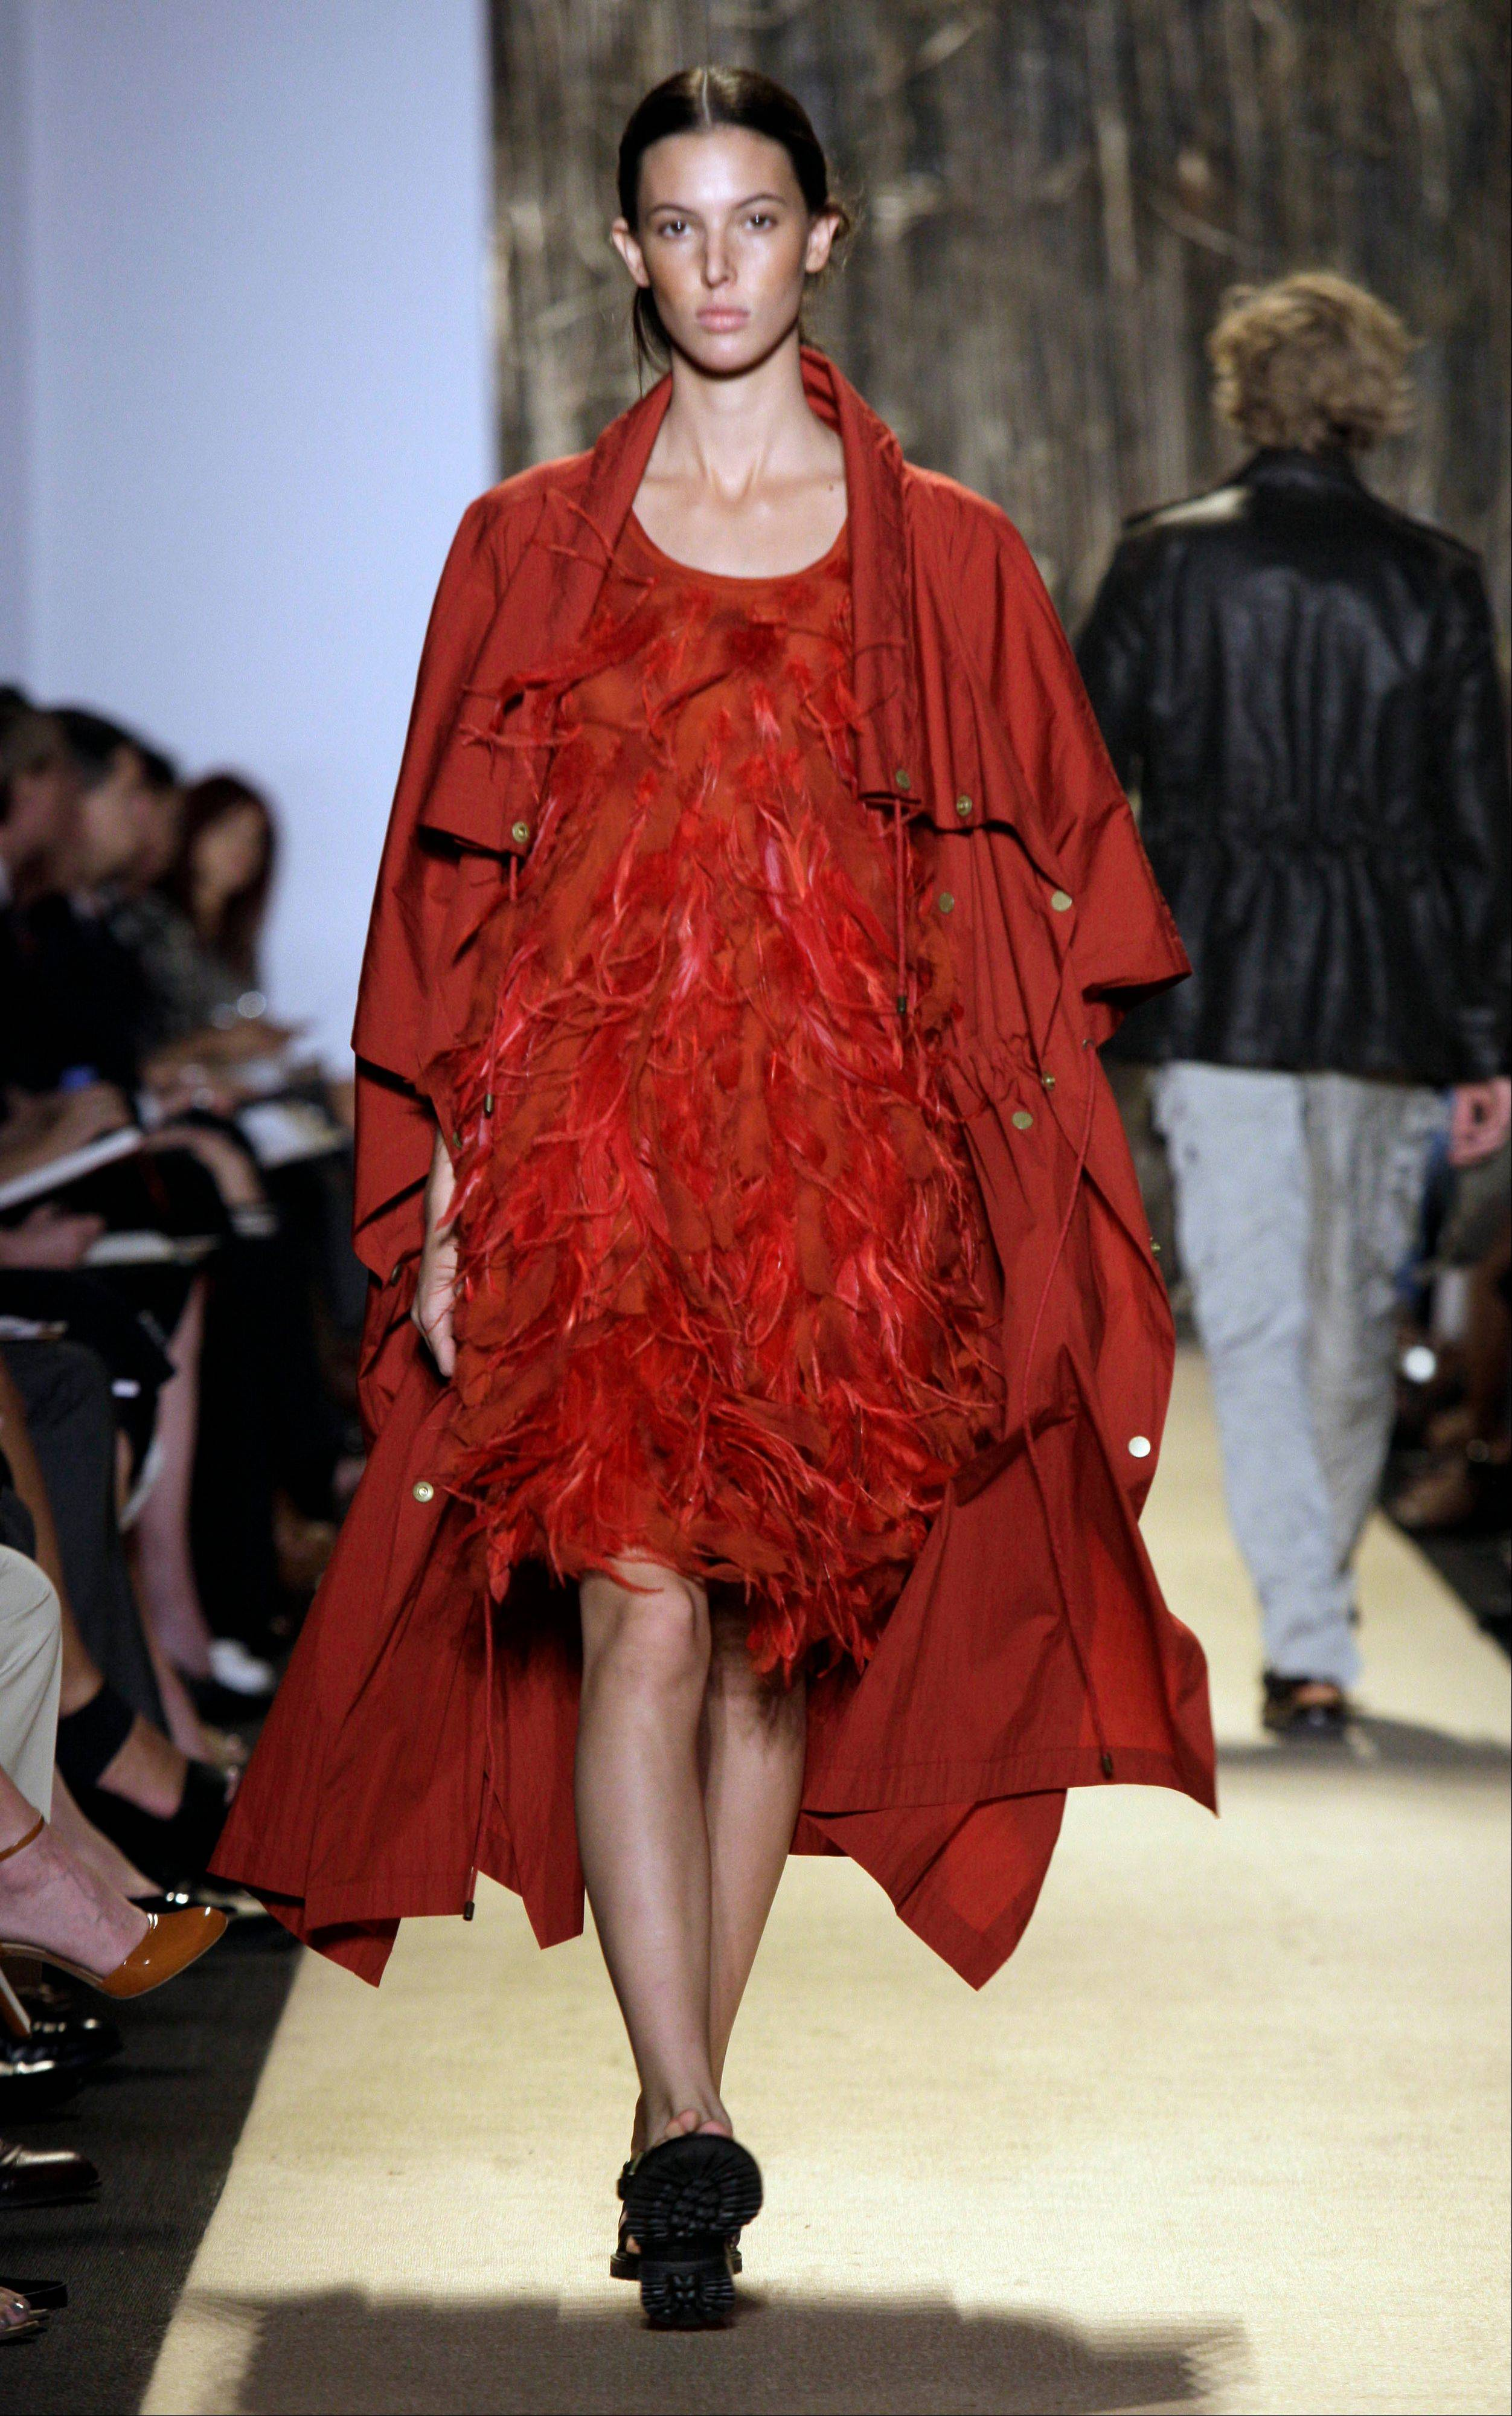 The spring 2012 collection of Michael Kors is modeled during Fashion Week in New York.